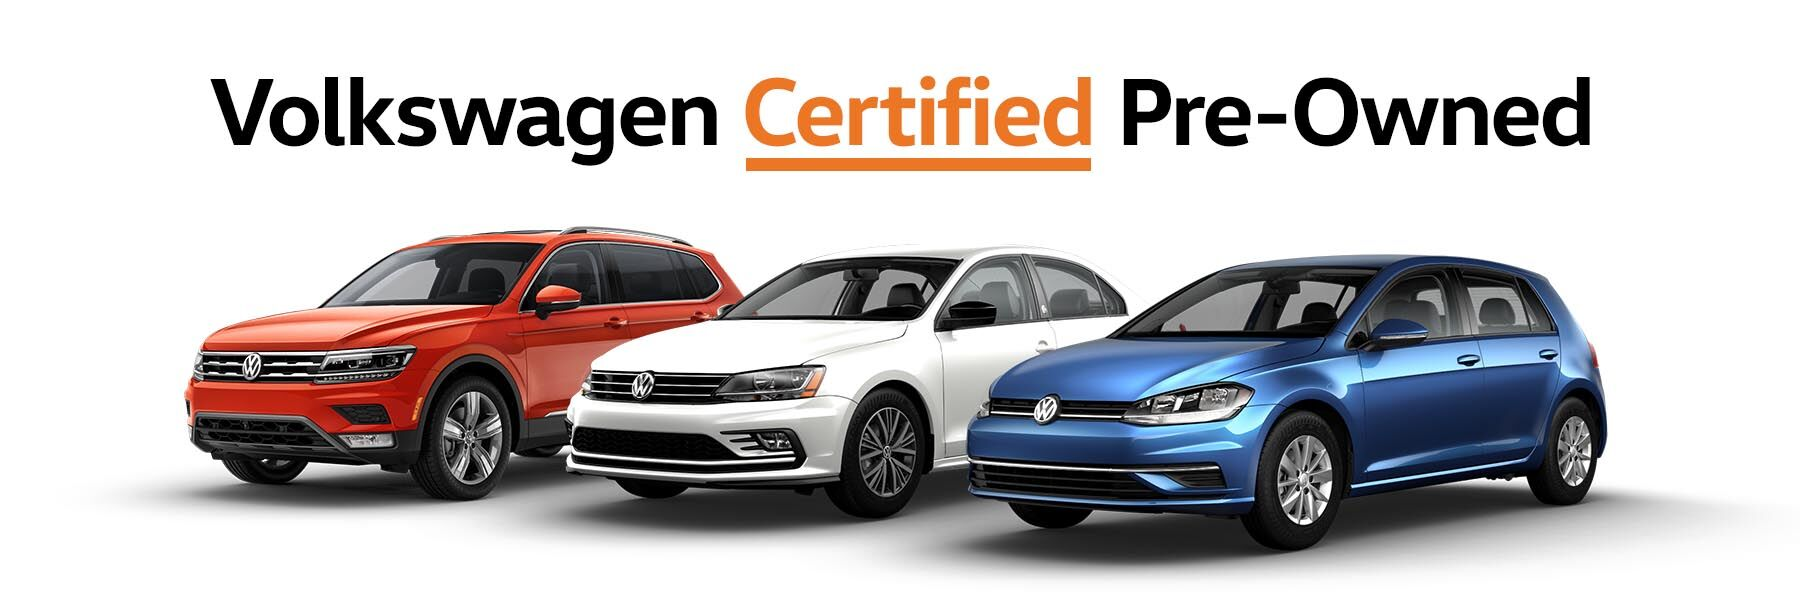 Volkswagen Certified Pre-Owned in West Chester, PA